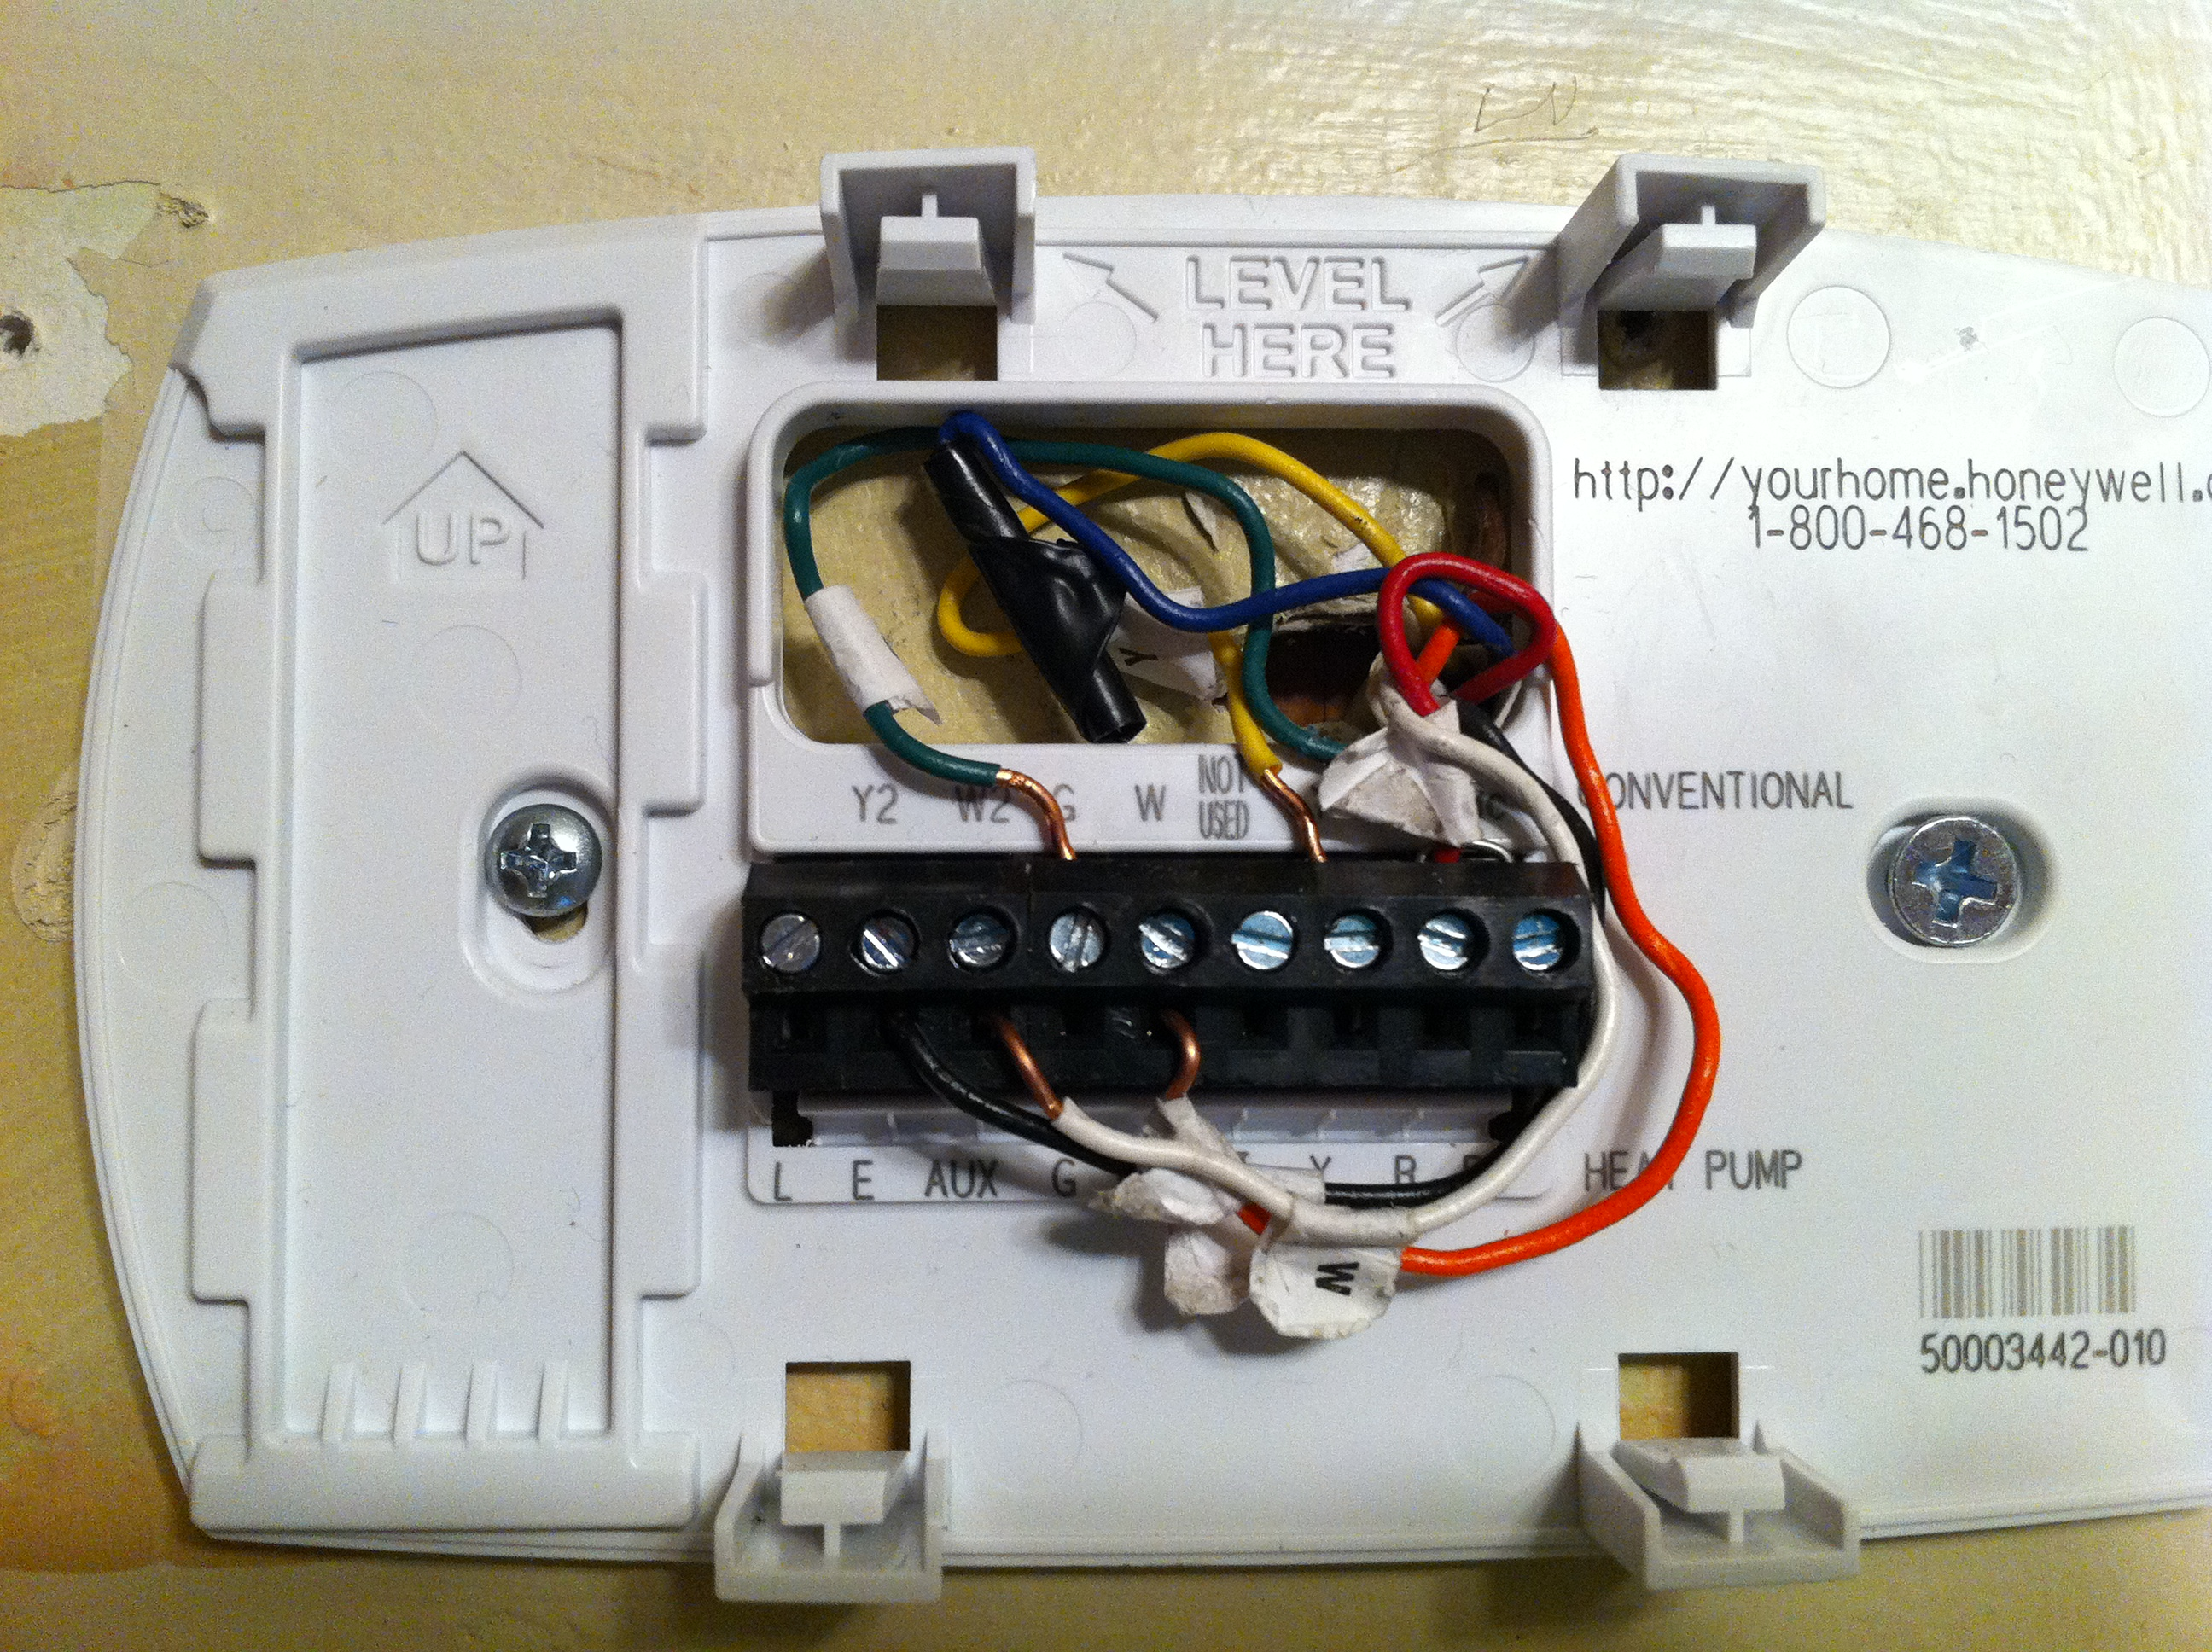 Wiring Diagram For Honeywell Thermostat Th5110d1006 : Honeywell thermostat rth d wiring diagram